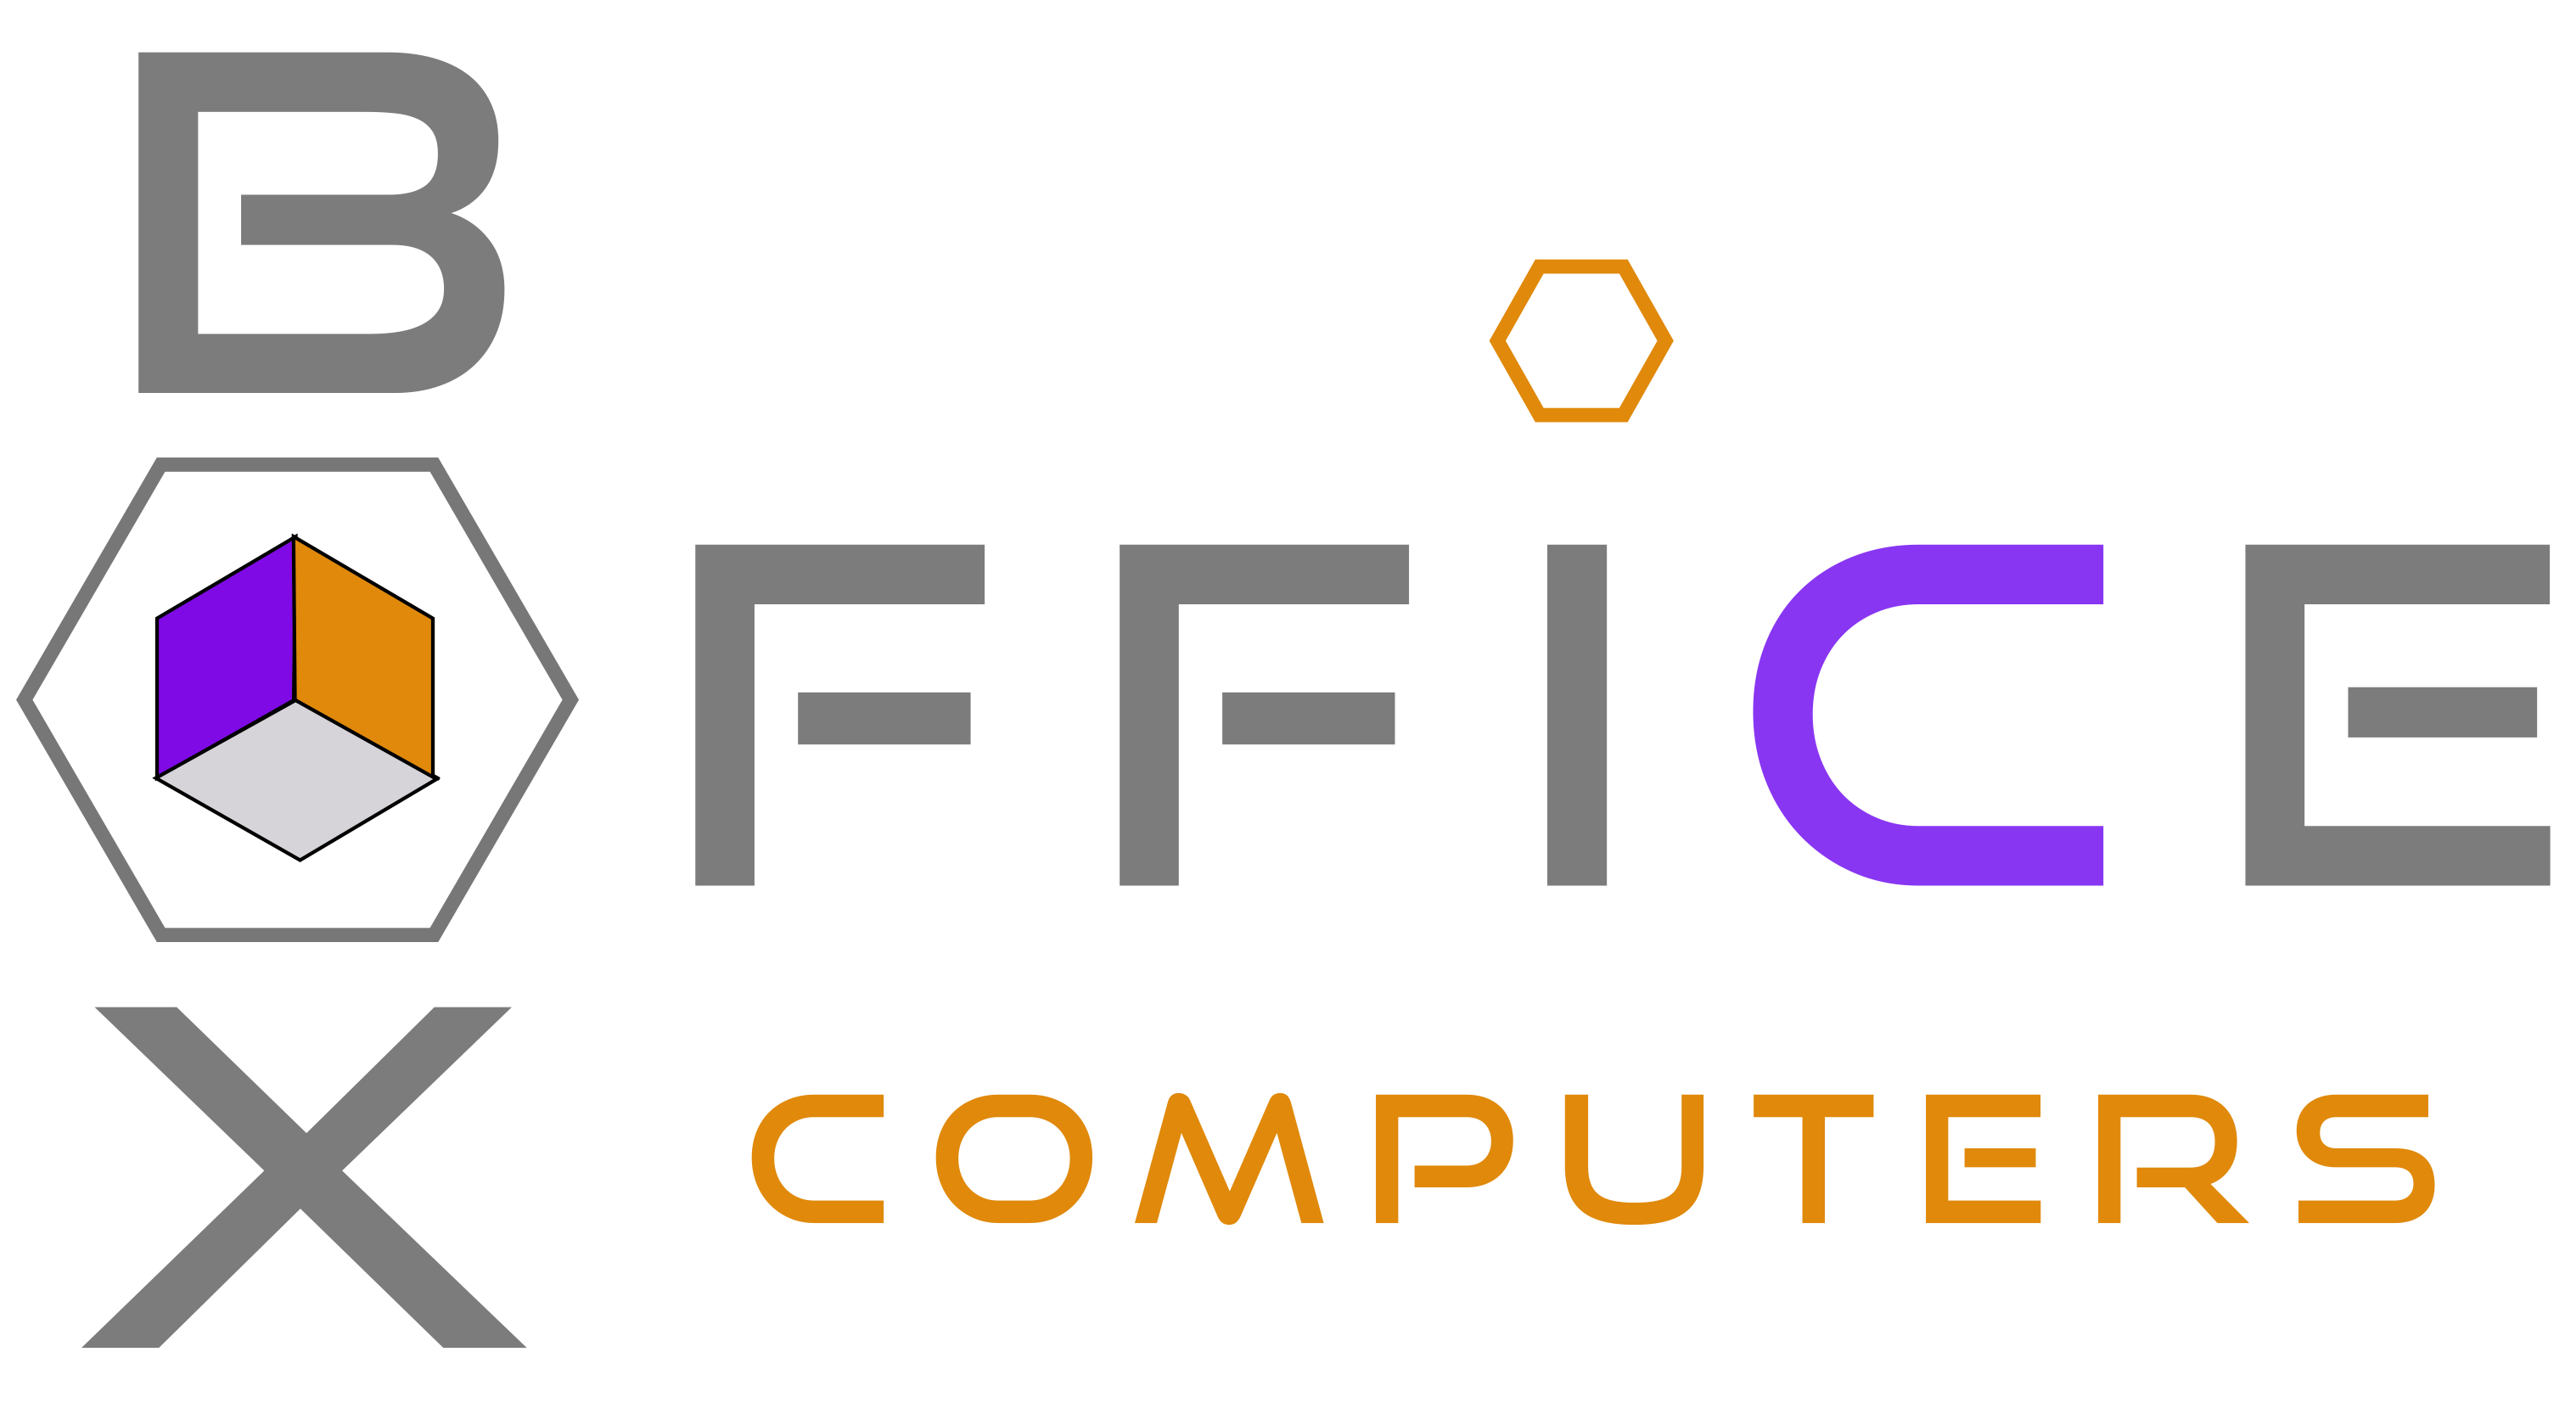 Box Office Computers